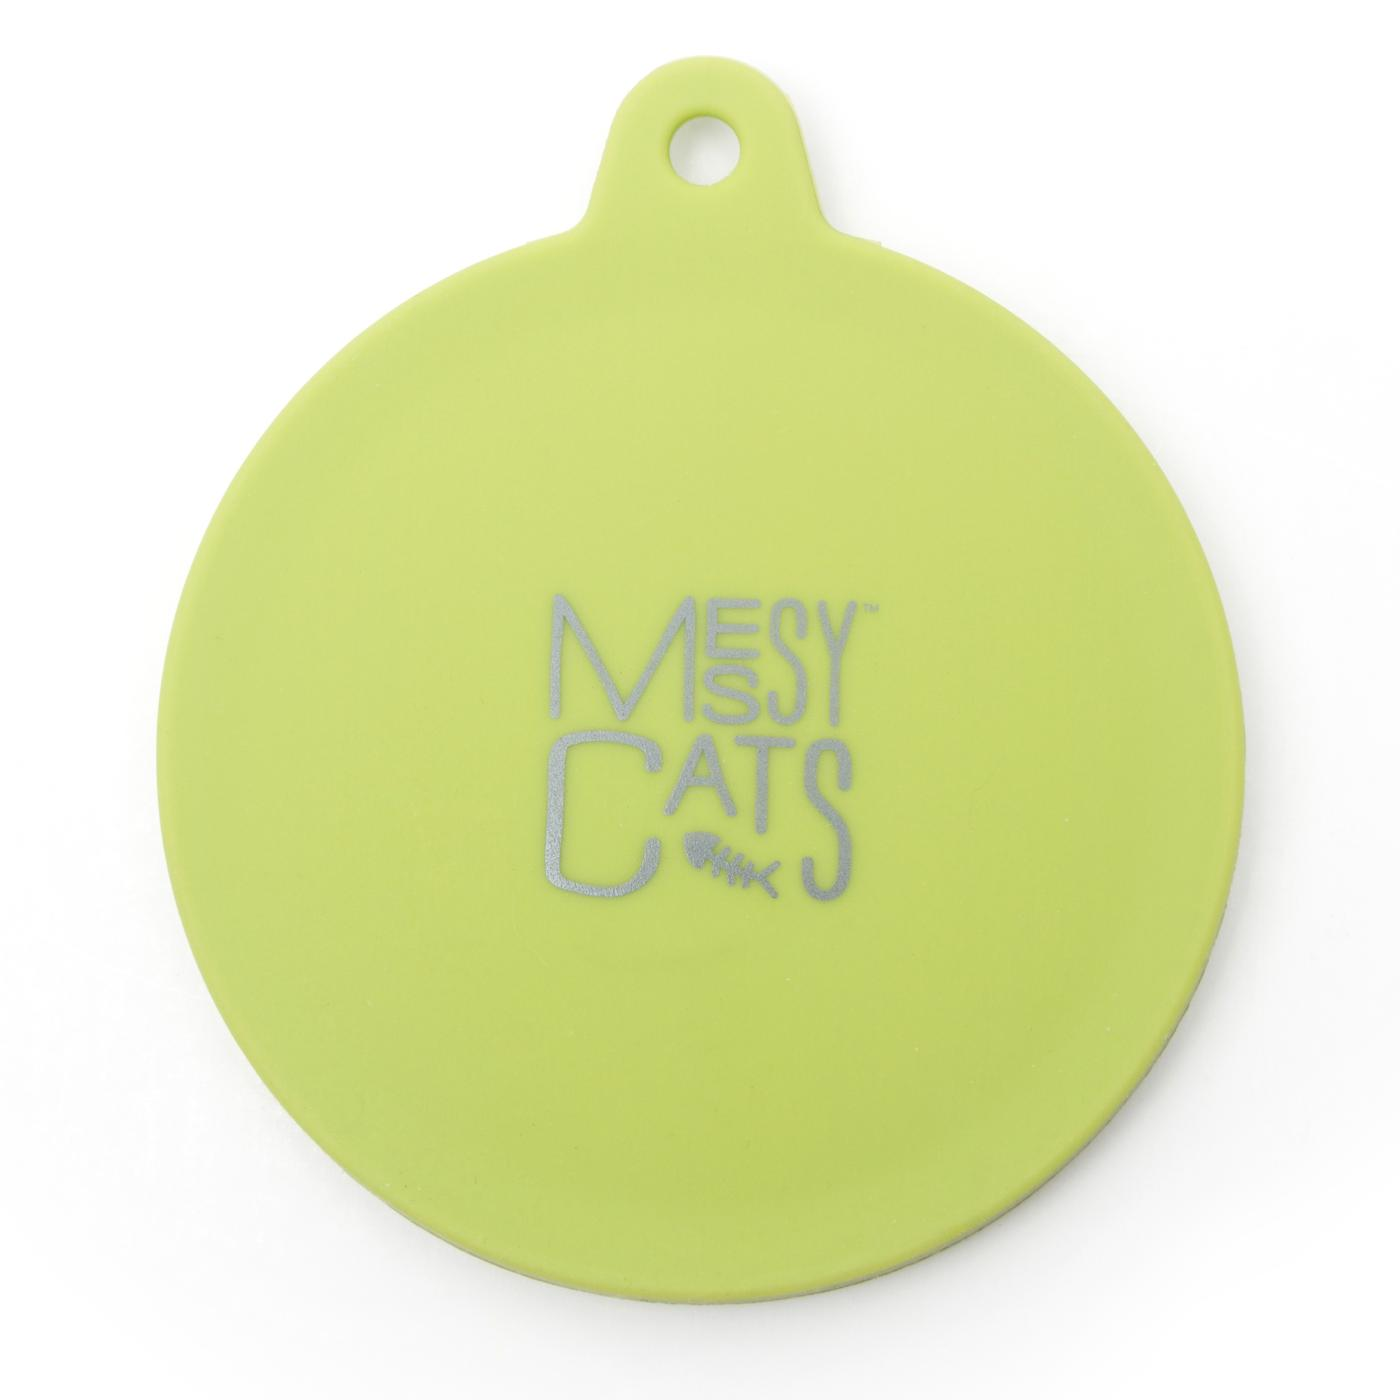 Messy Cats Silicone Can Cover, Green